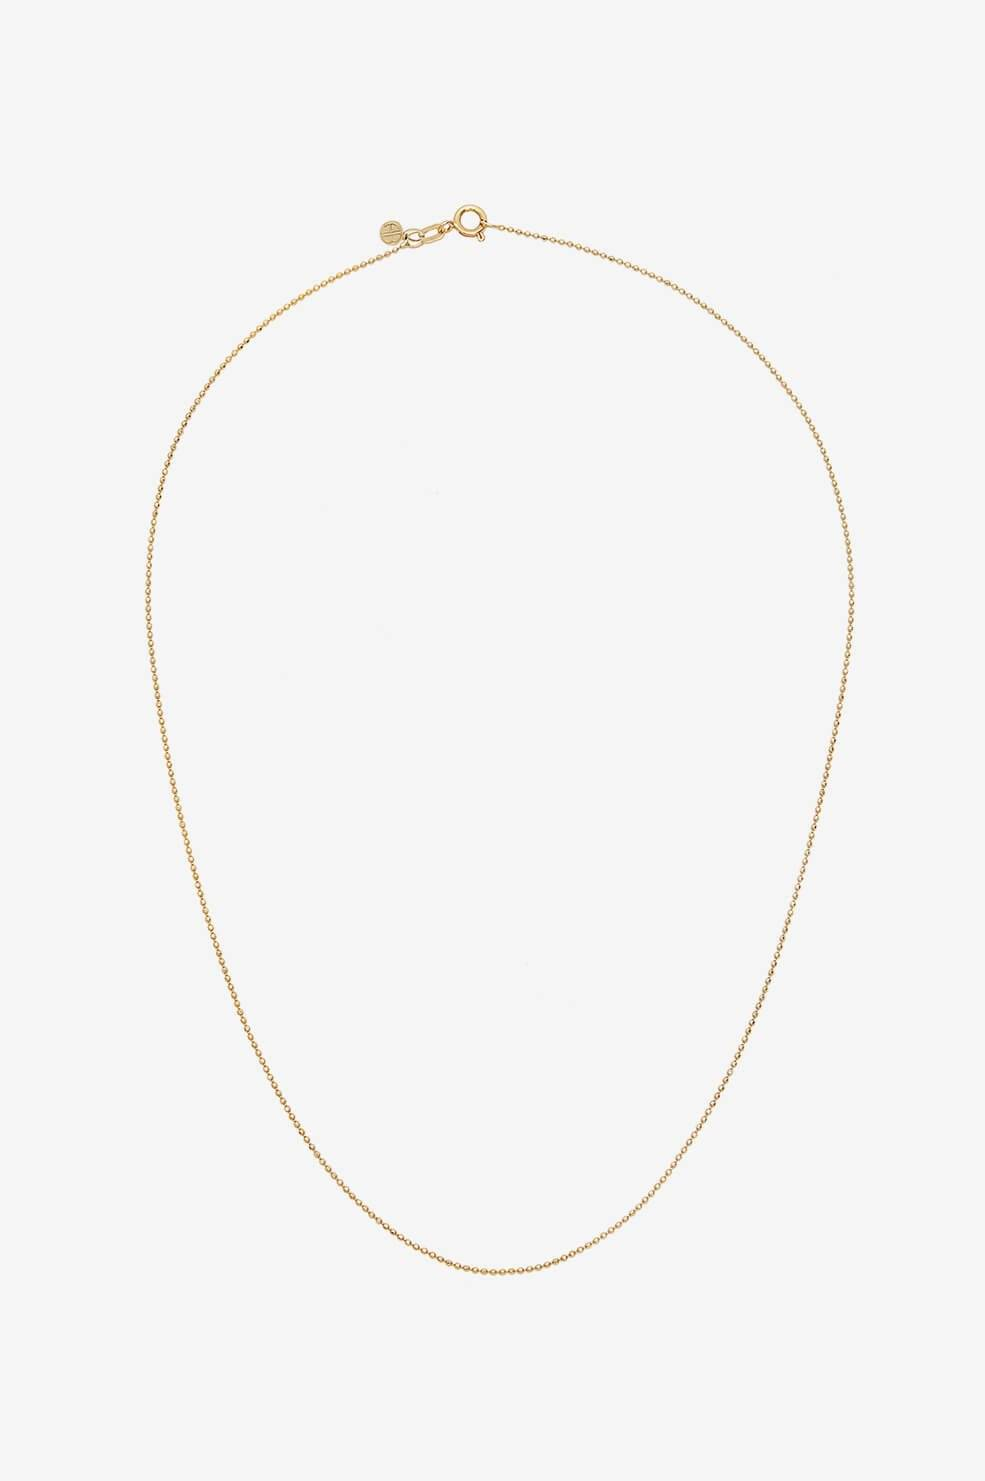 ANINE BING Beaded Necklace in Gold  - 14k Yellow Gold - Size: One Size